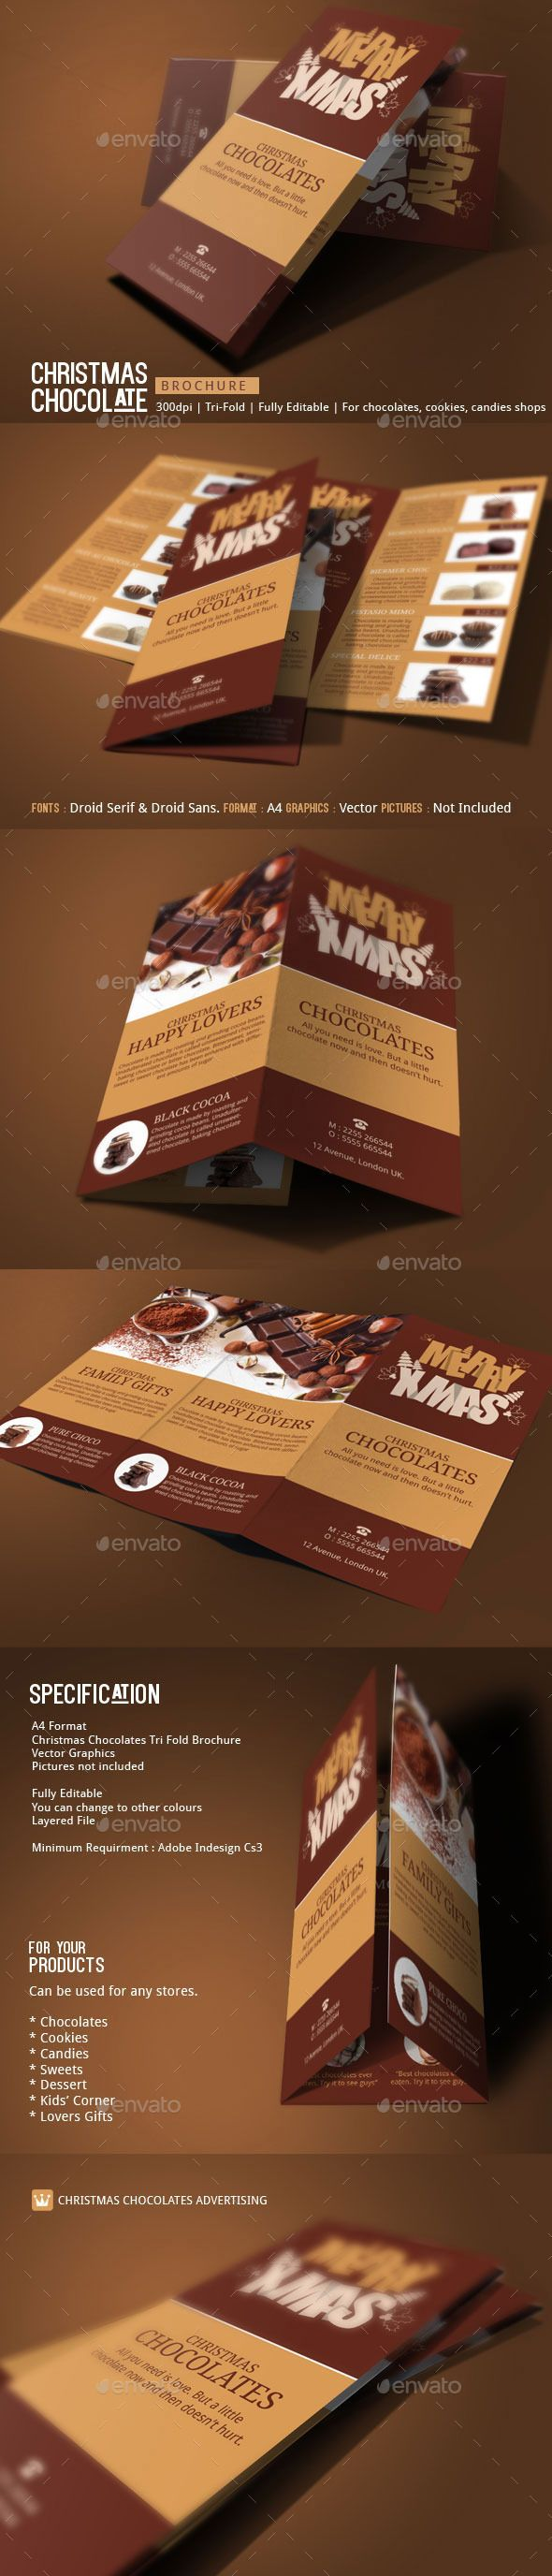 CHRISTMAS CHOCOLATES You got a Chocolate store? You dont know how to make a brochure and you are wishing to advertise your best ch